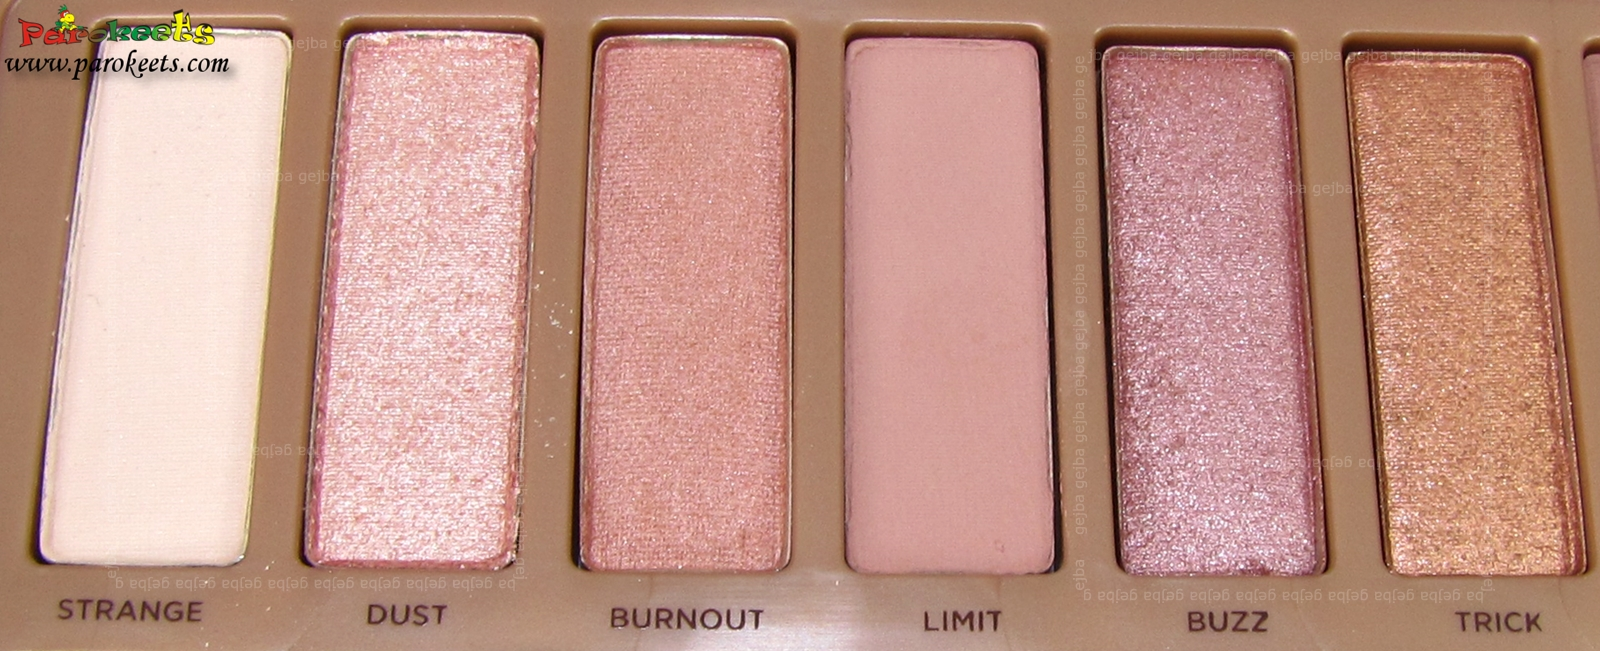 Urban Decay Naked 3 palette Strange, Dust, Burnout, Limit, Buzz, Trick